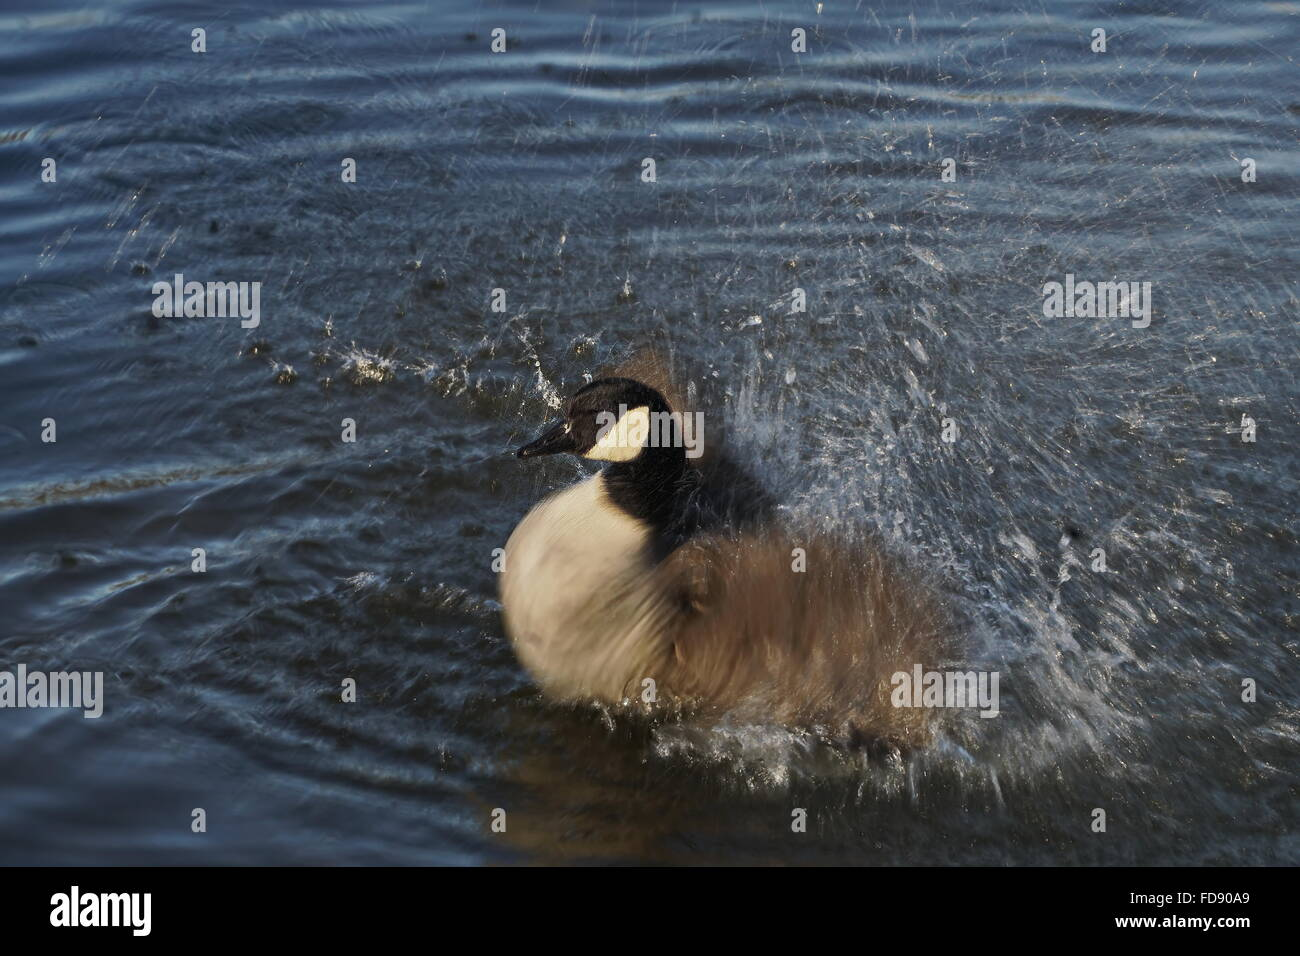 London,England, UK : 28th Jan 2016 : Greylag goose at Leytonstone, Epping Forest in London. Photo by See Li Stock Photo